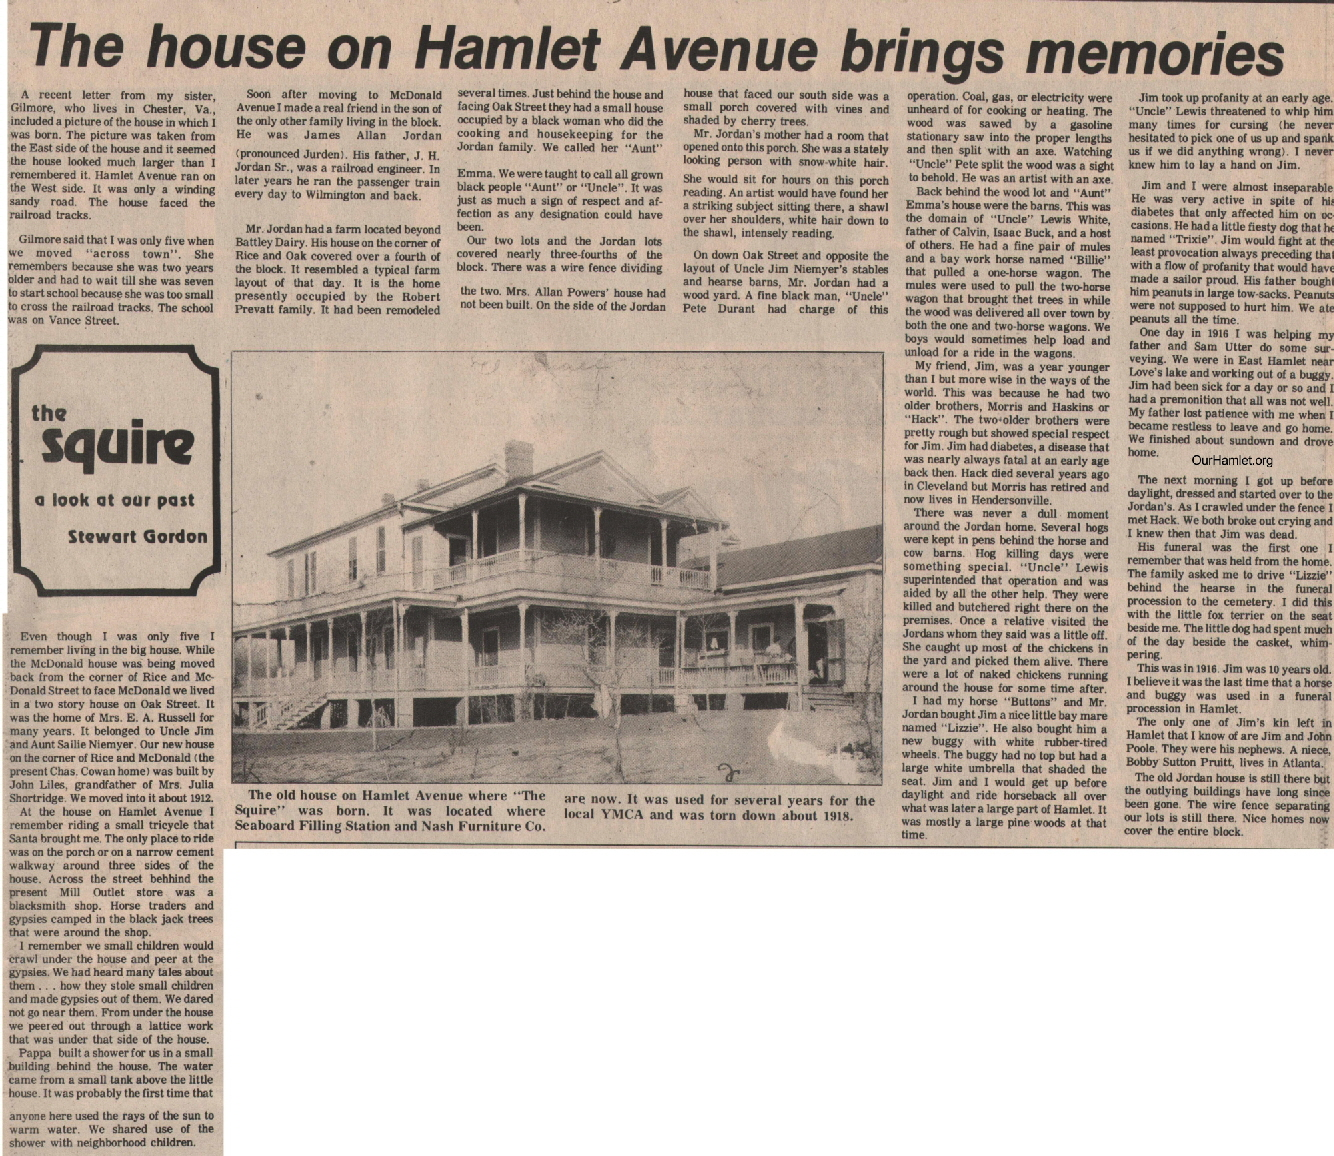 The Squire - The house on Hamlet Avenue brings memories OH